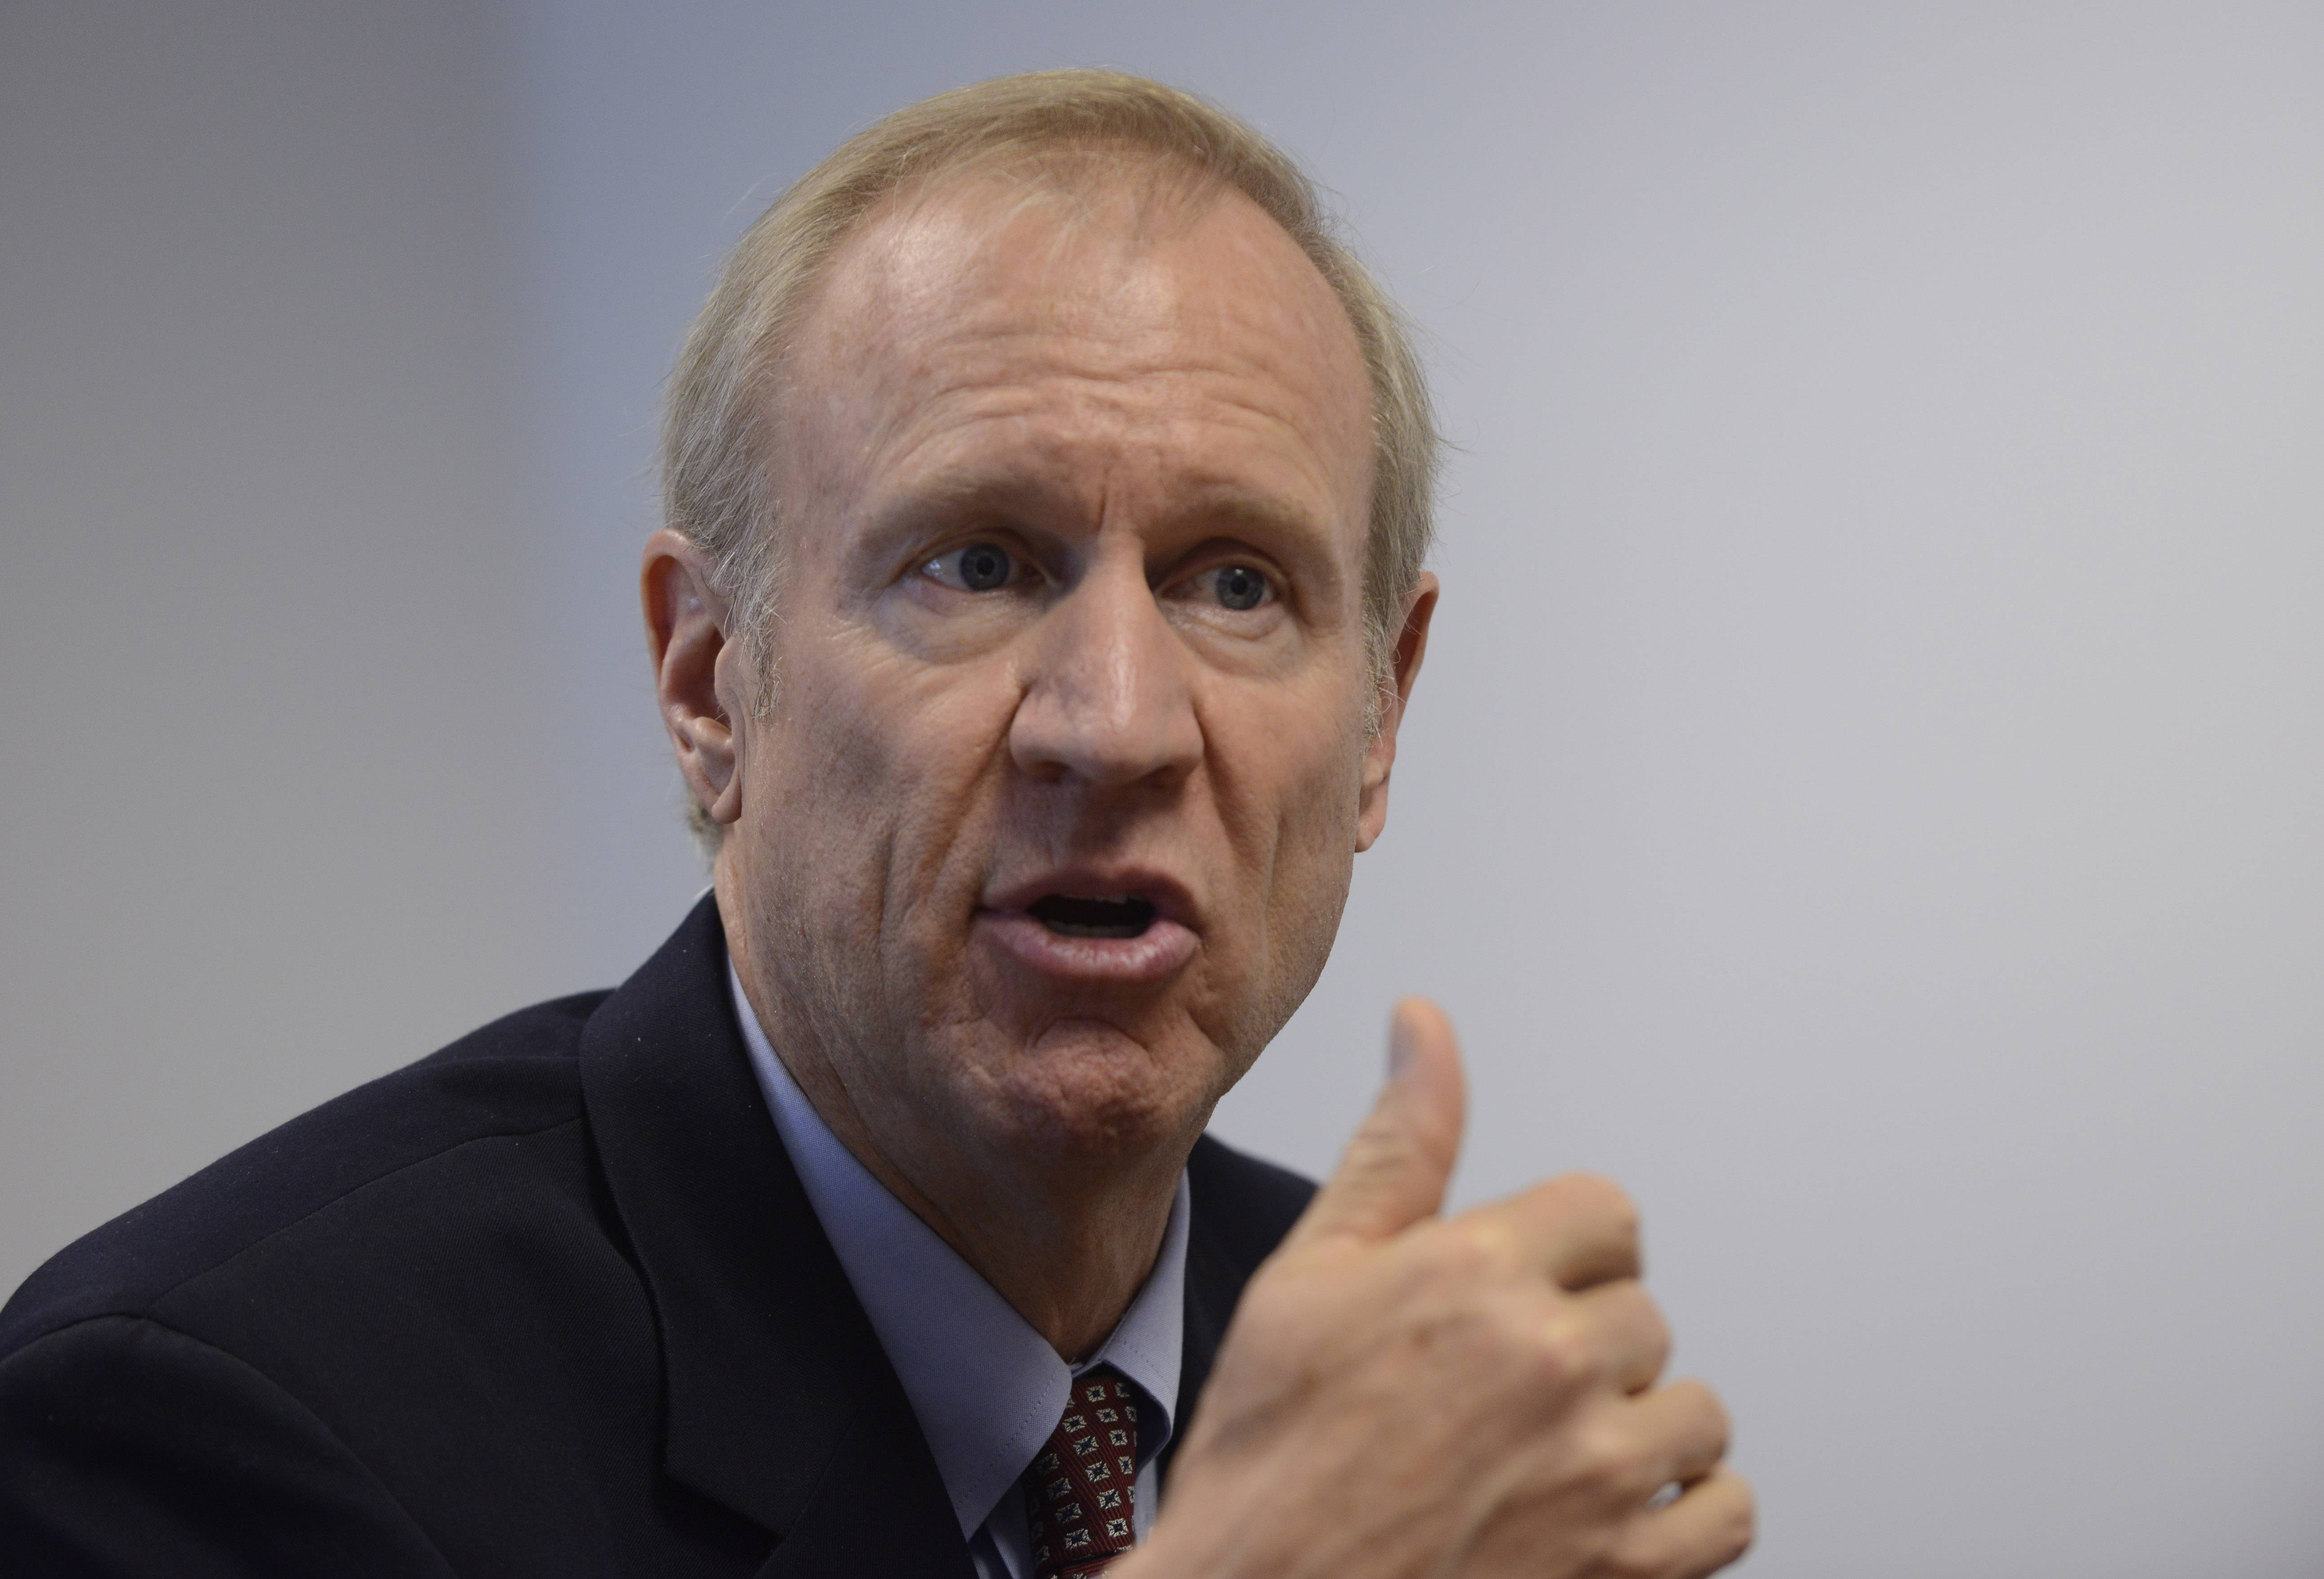 Bruce Rauner, Republican candidate for governor of Illinois